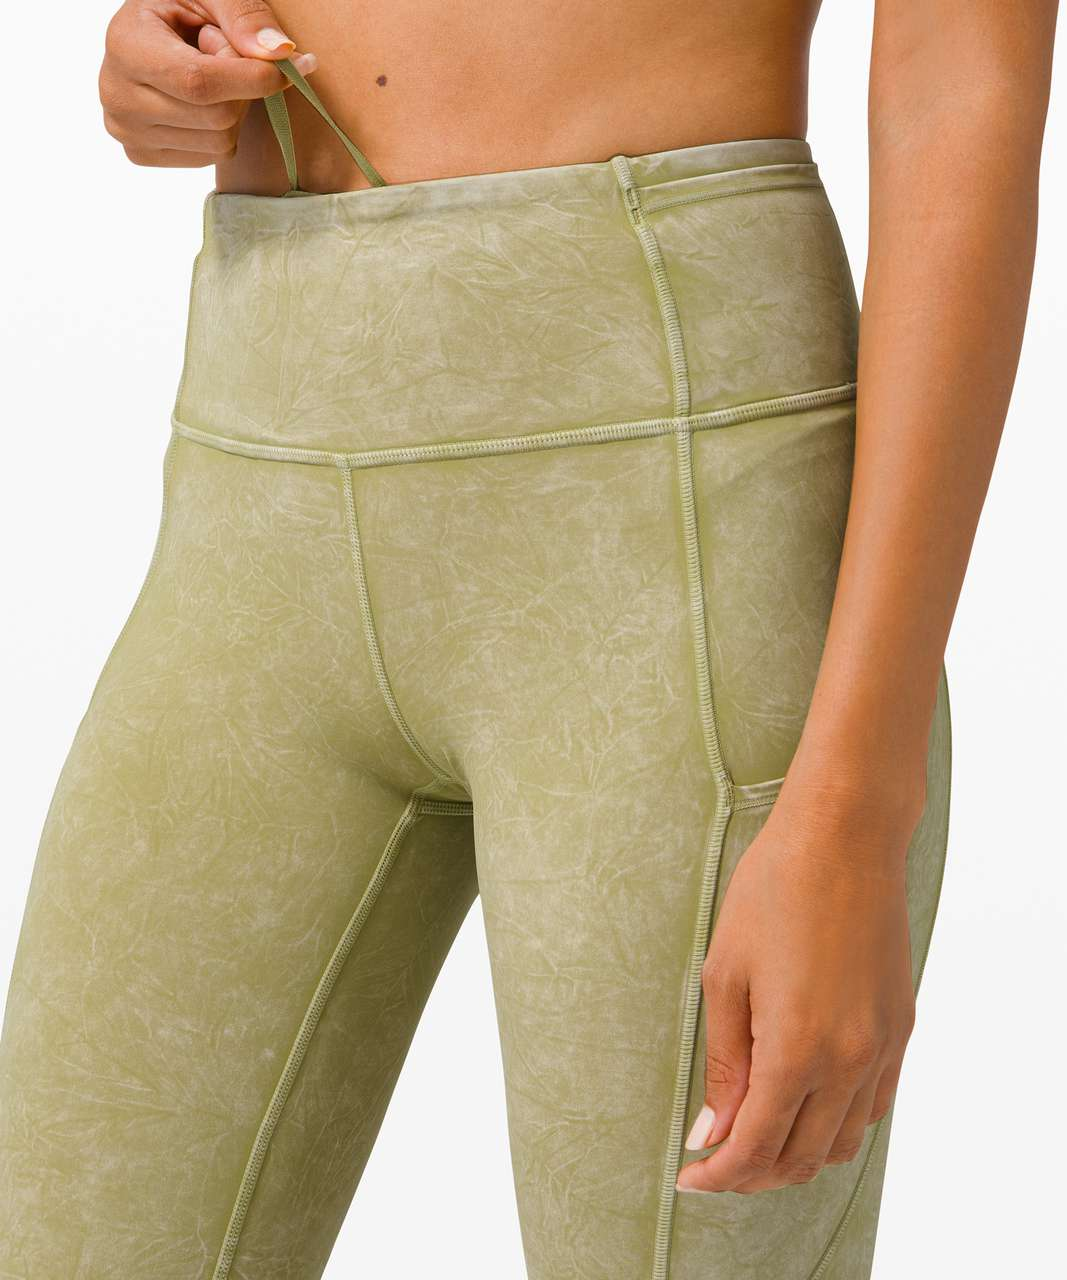 "Lululemon Fast and Free High Rise Tight 25"" *Ice Dye - Ice Wash Hazel Green"